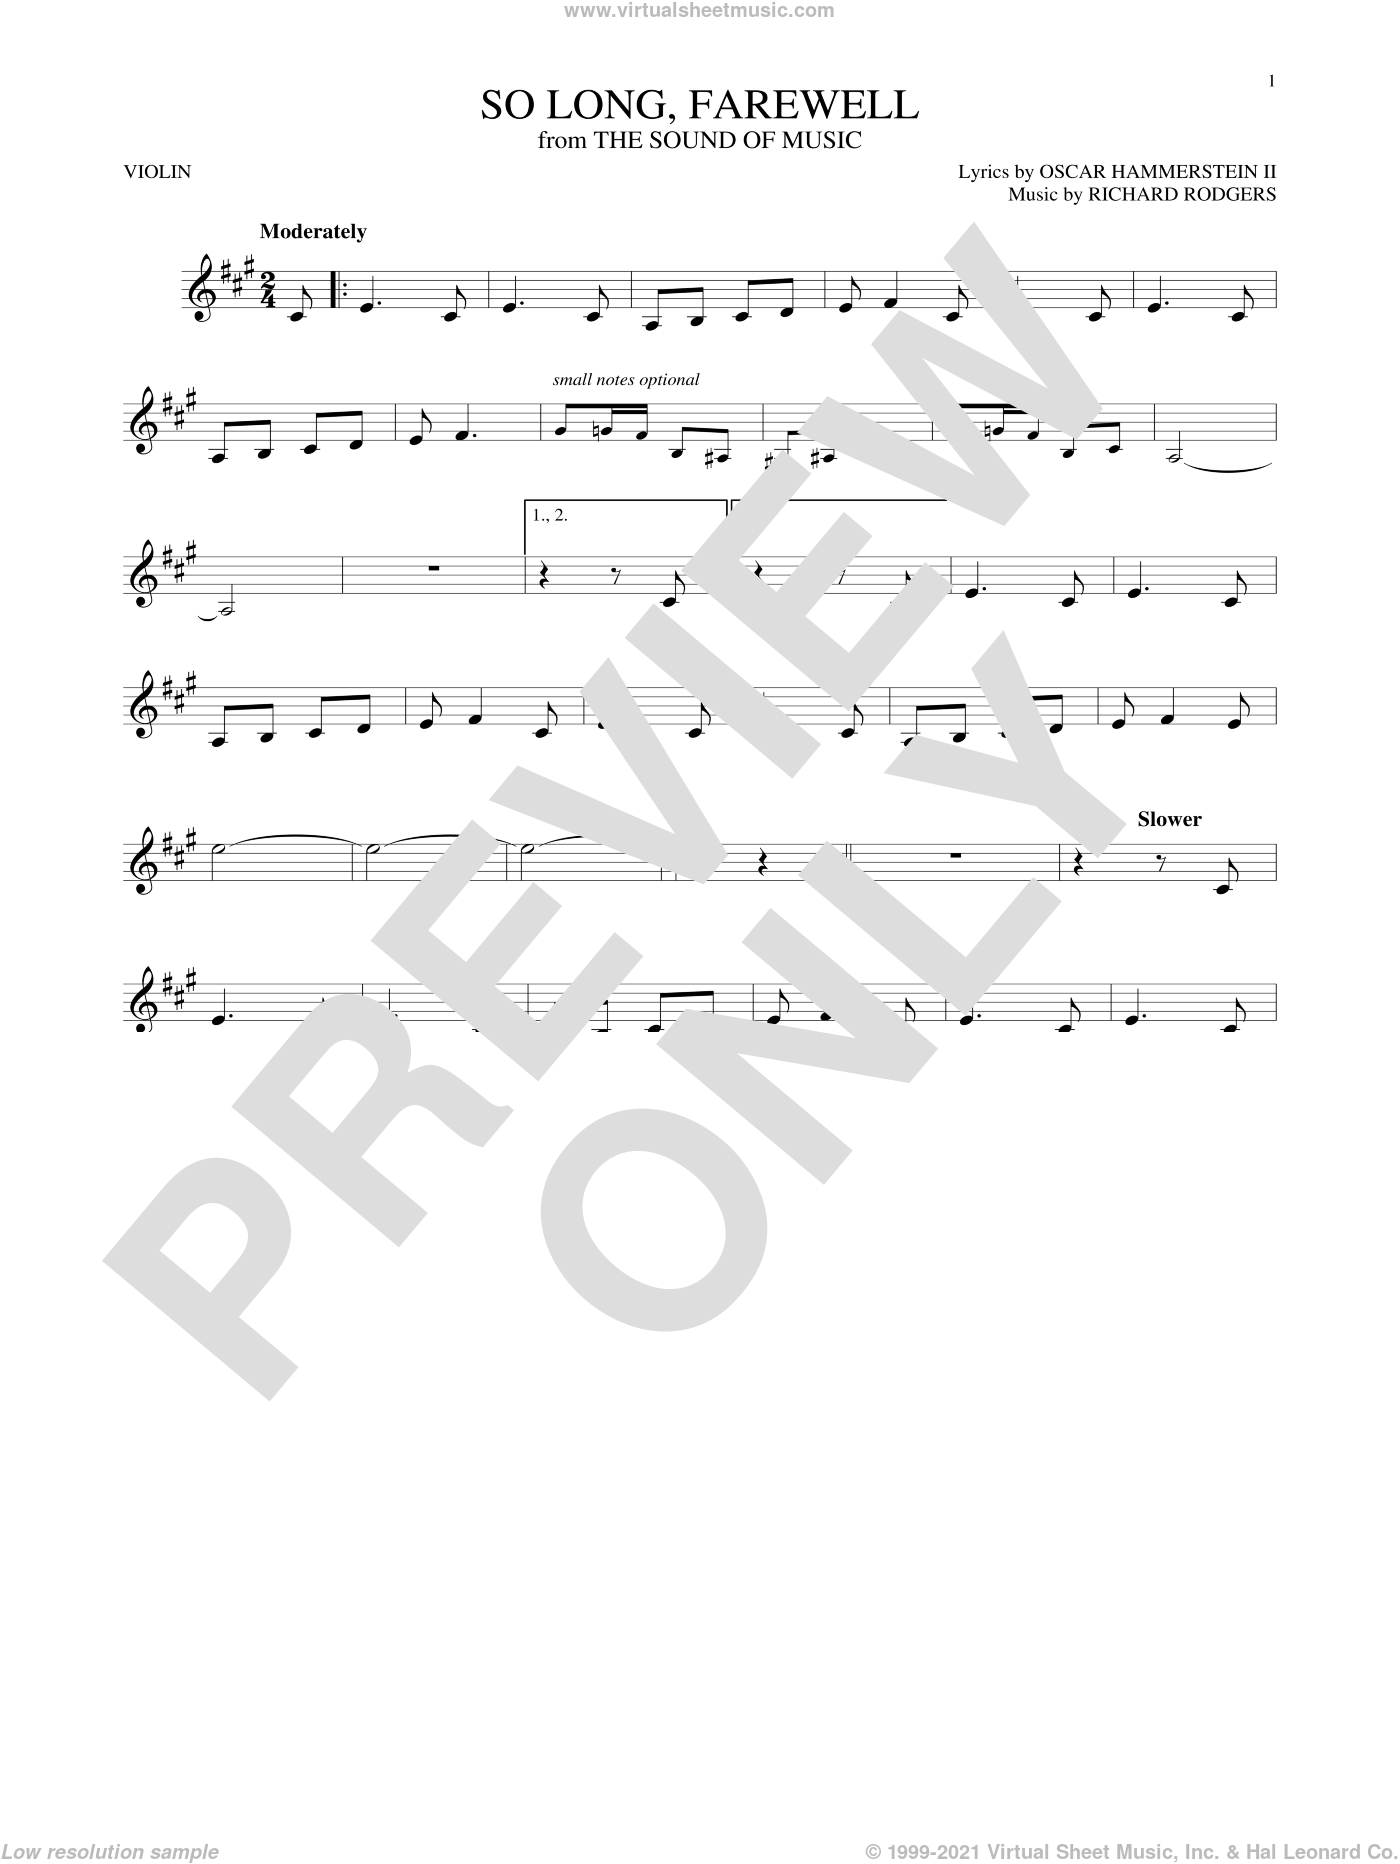 So Long, Farewell sheet music for violin solo by Richard Rodgers